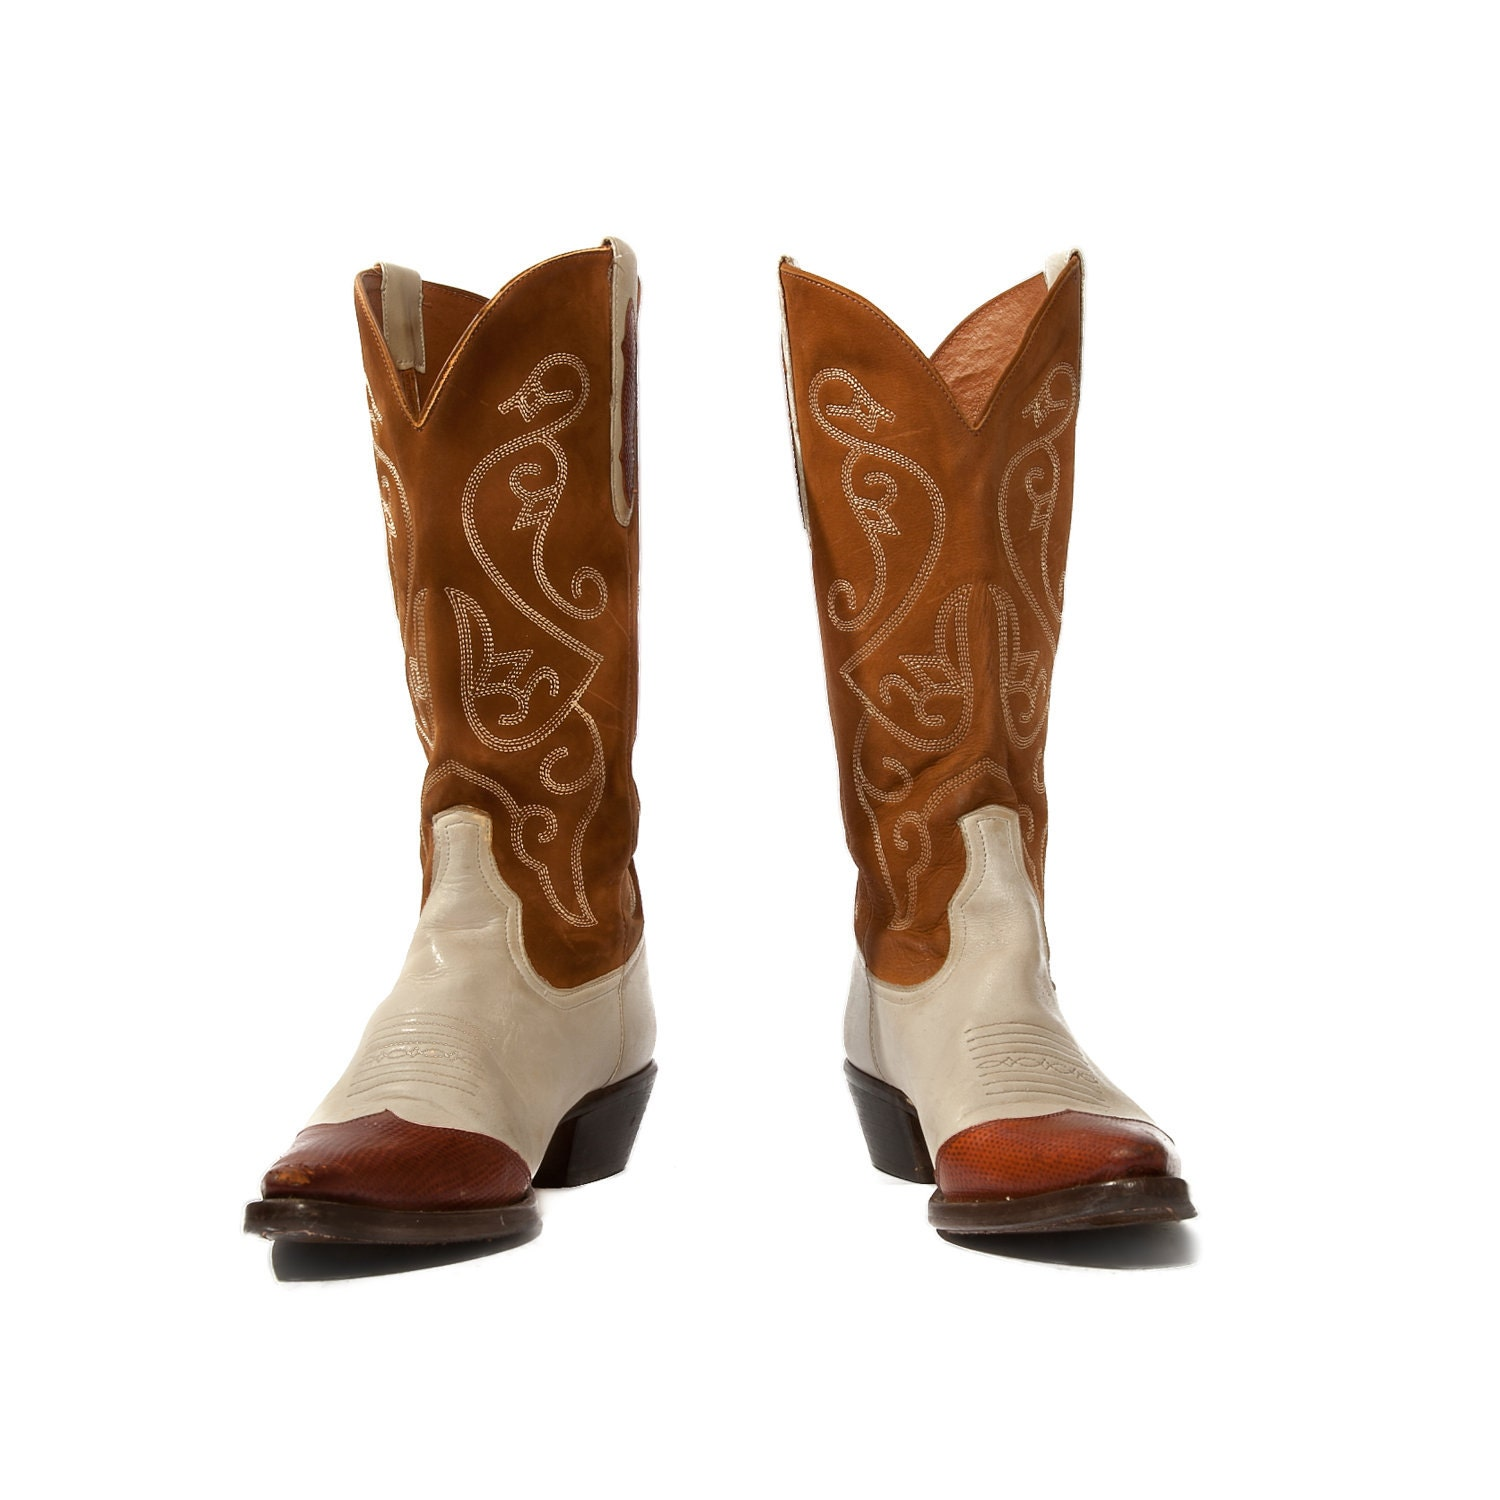 Vintage Nine West Cowboy Boots Two Tone Western Boots